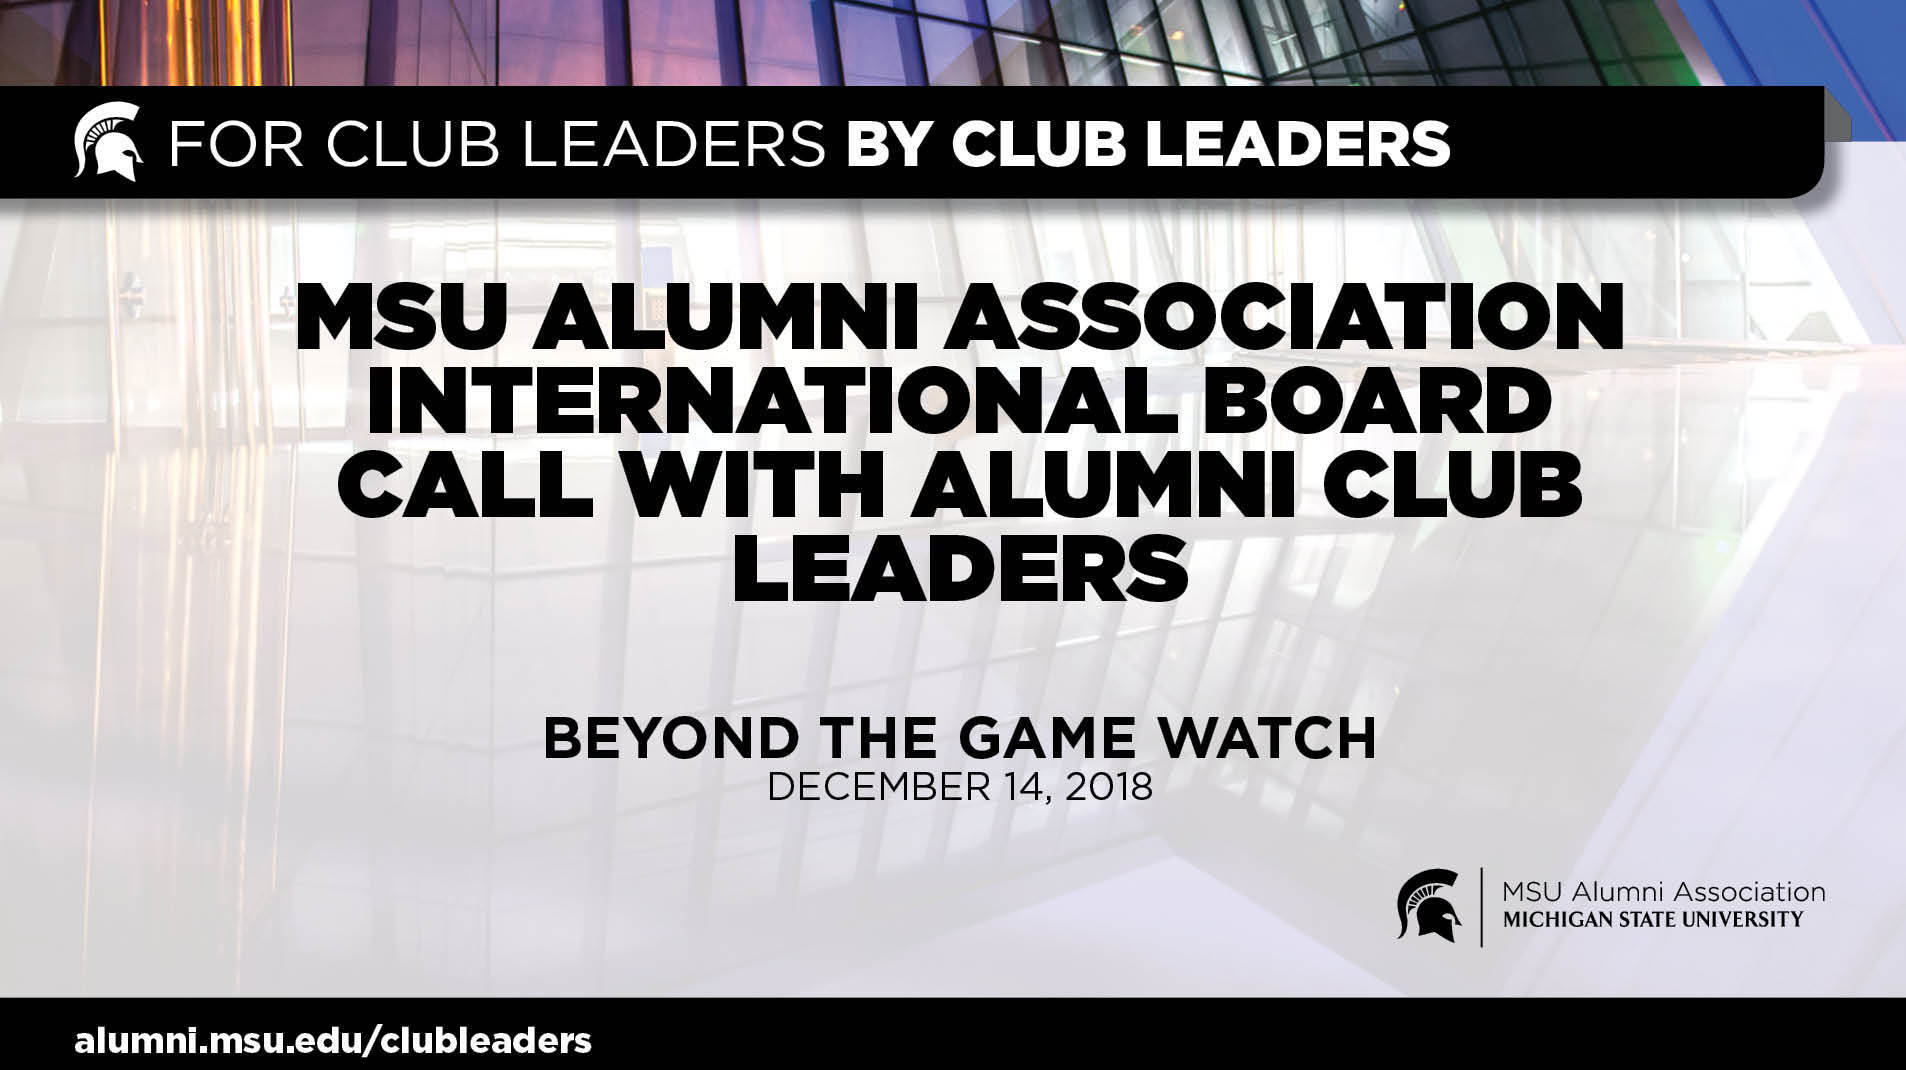 webinar cover image for International Board Call with Alumni Club Leaders | Beyond the Game Watch